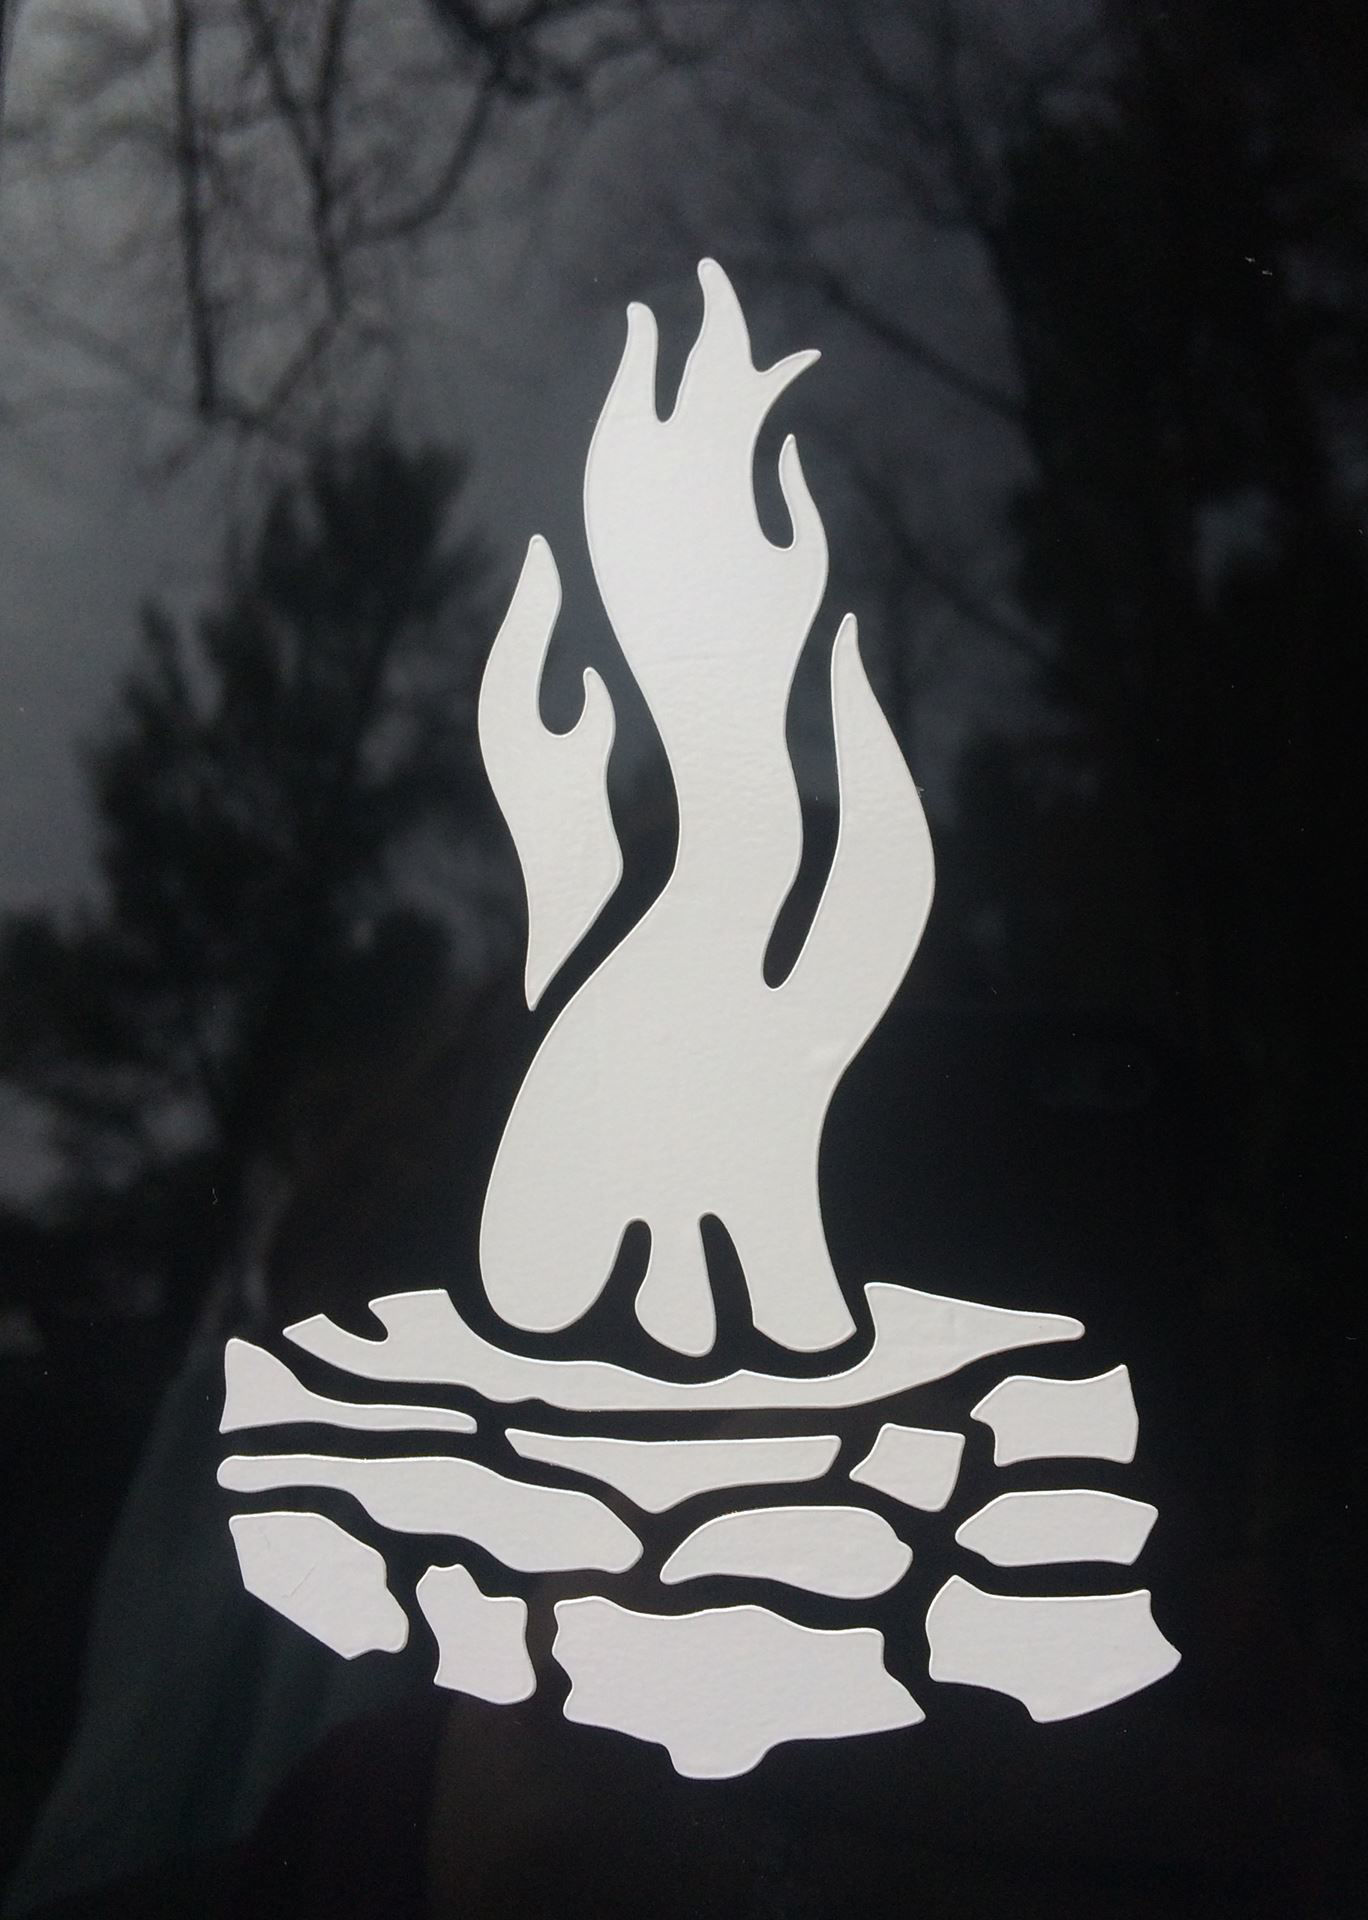 Picture of White Council Fire Vinyl Decal